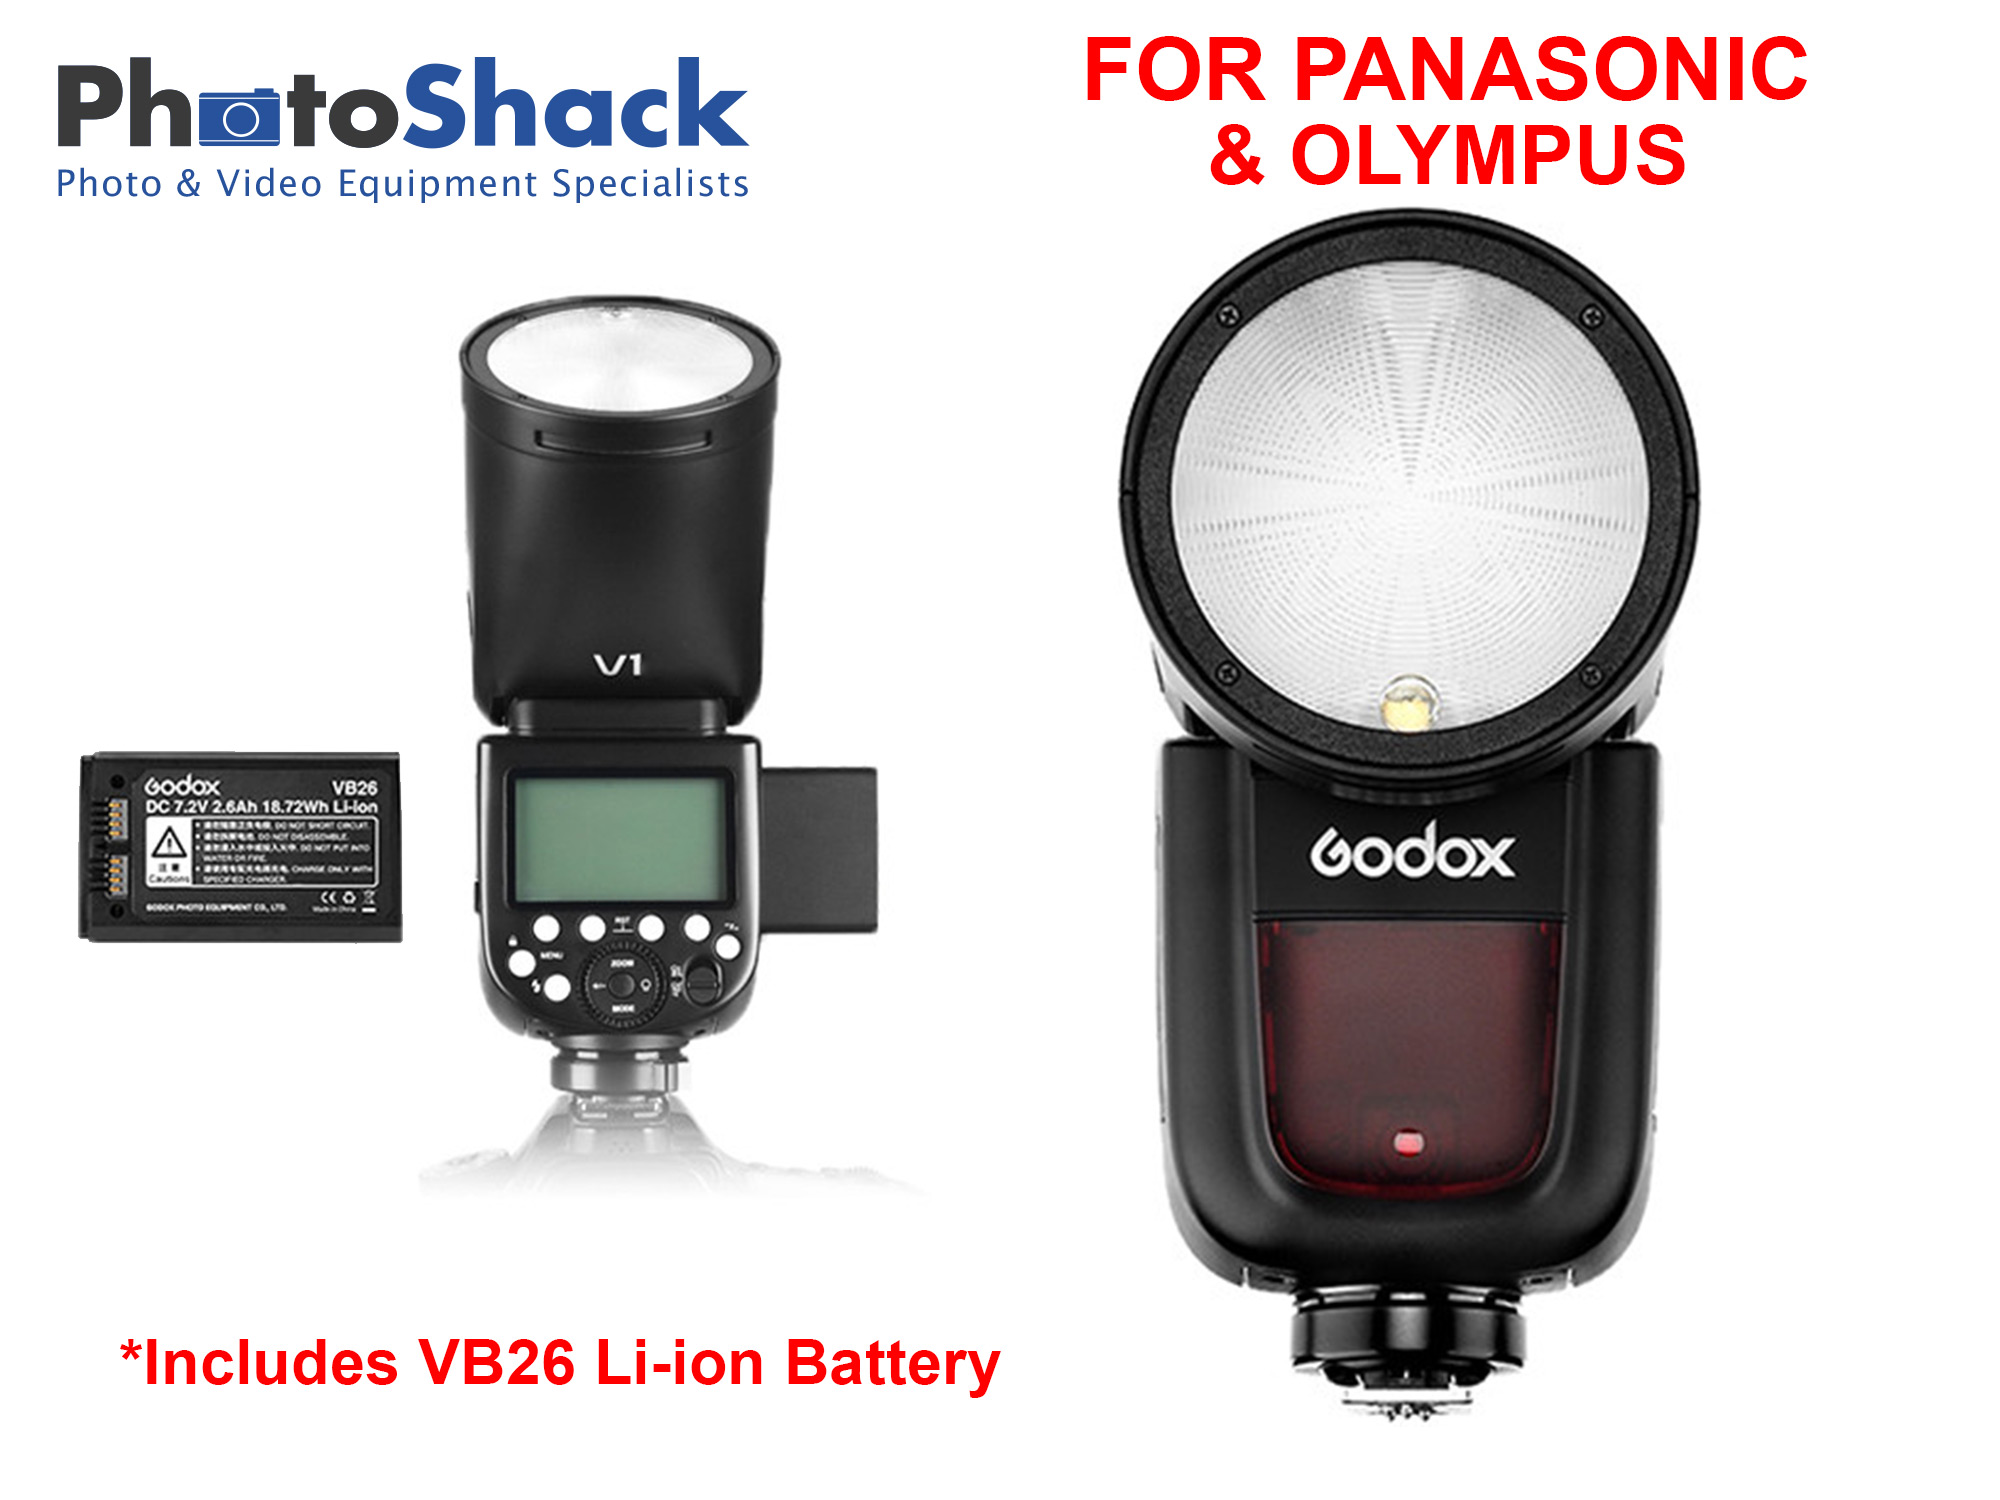 Godox V1 Flash for Panasonic/Olympus